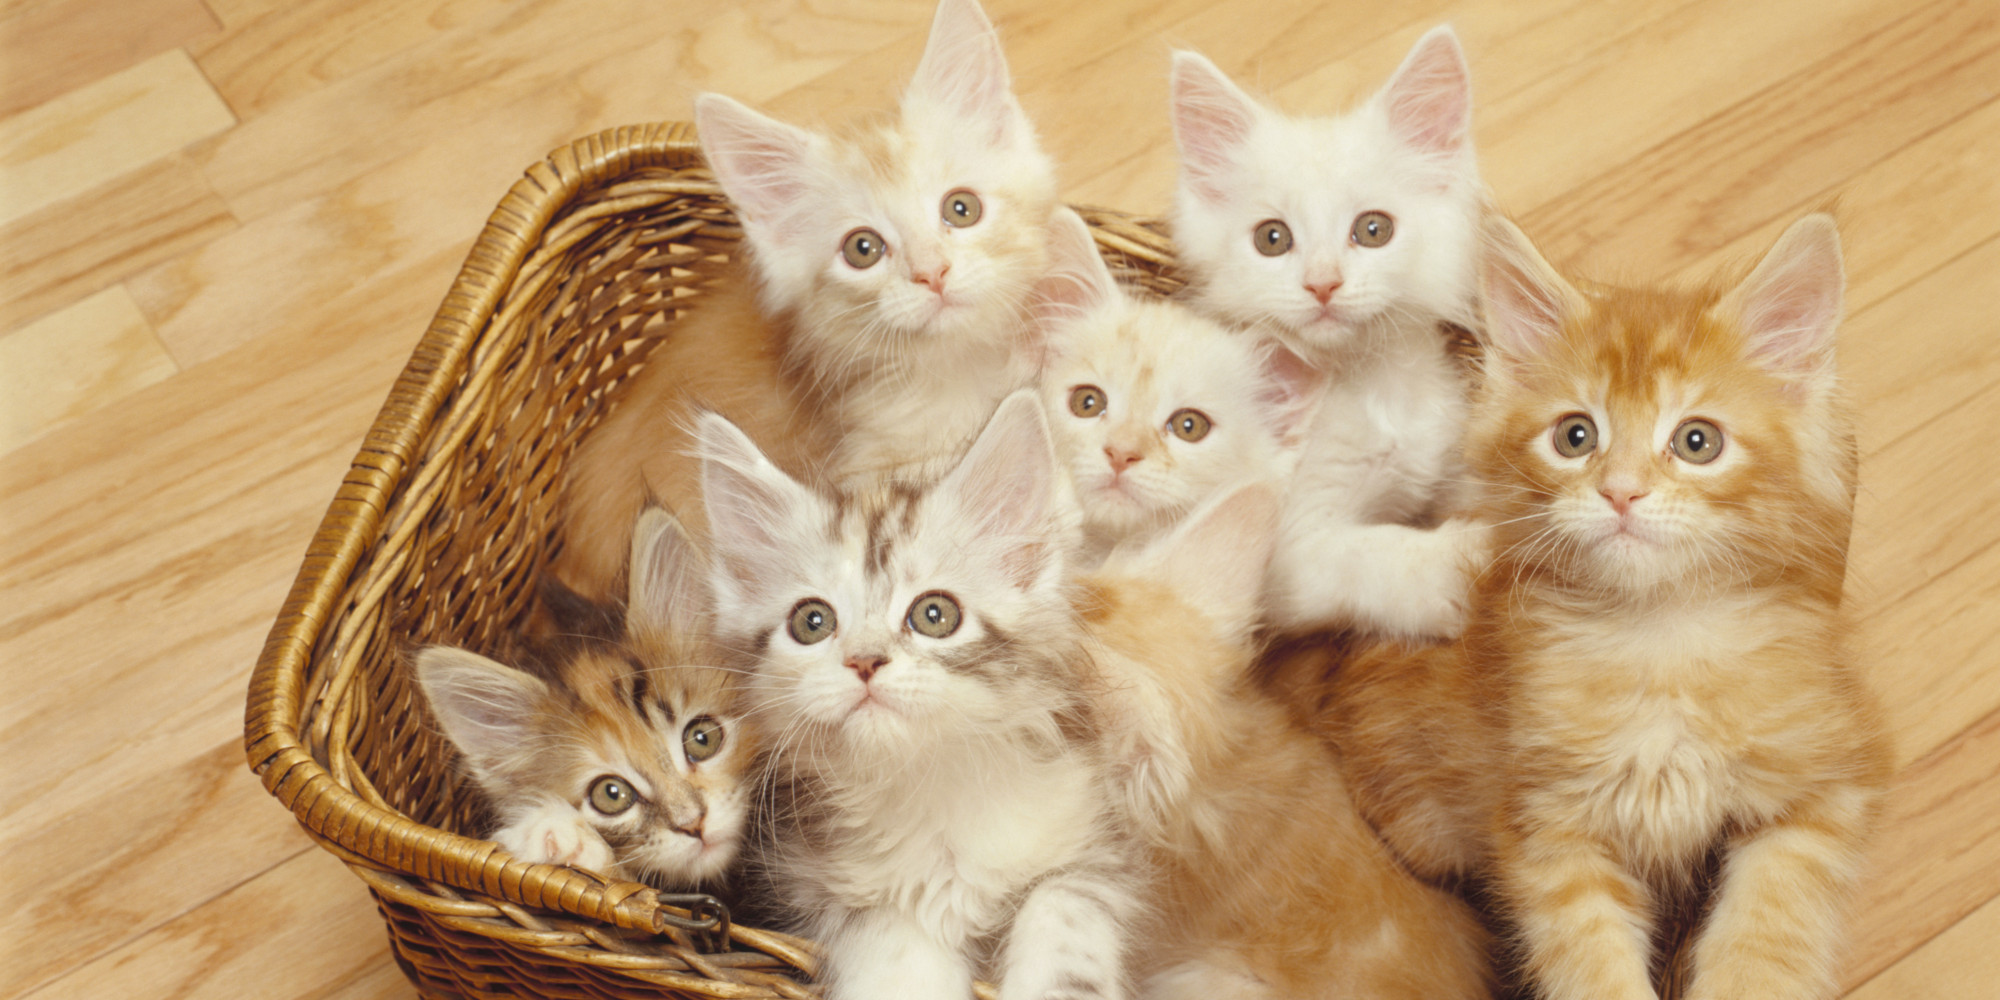 o NATIONAL CAT DAY facebook october 29 is national cat day show some respect huffpost